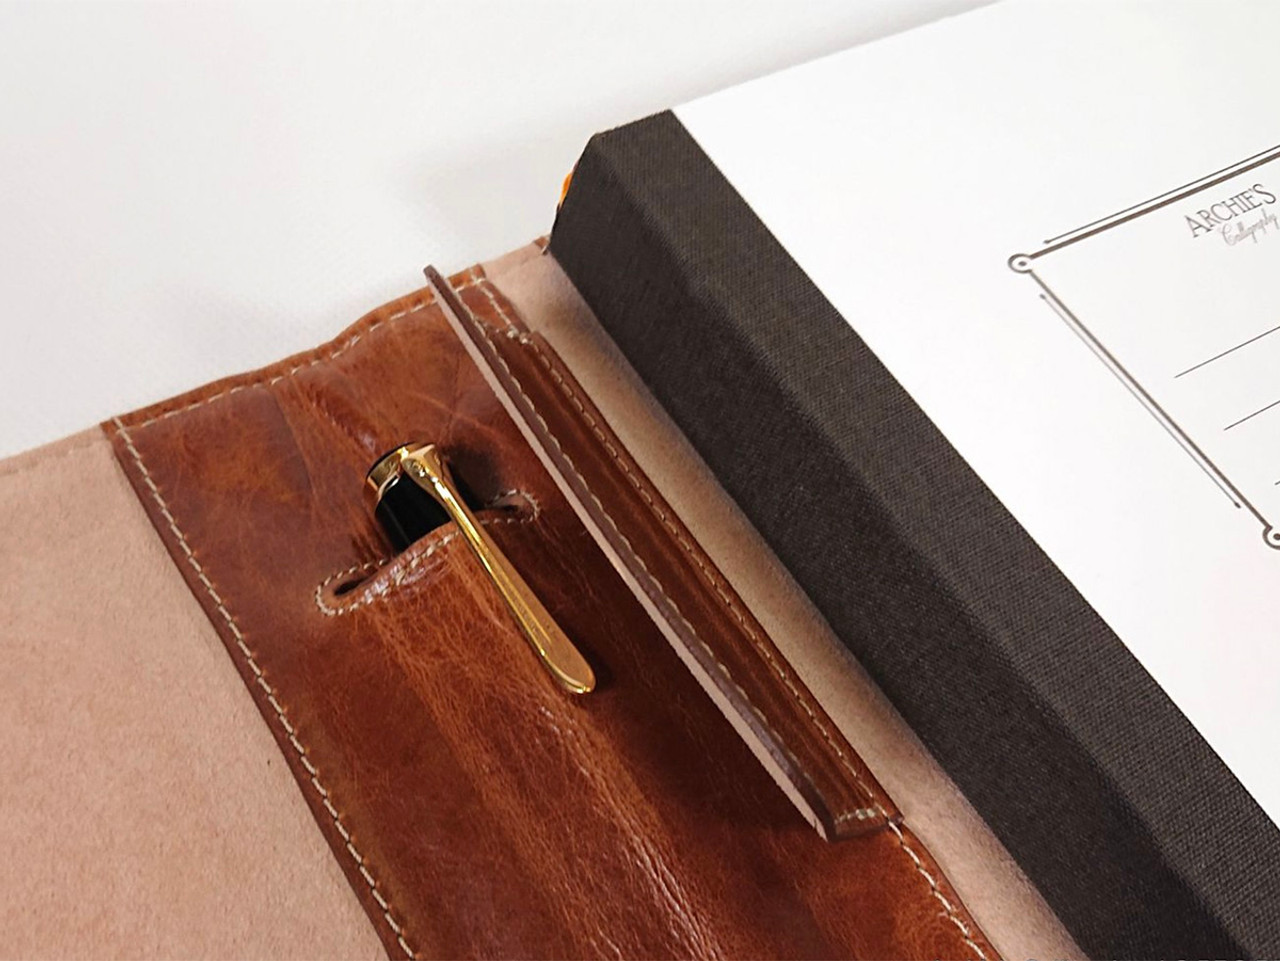 Archie's notebook and leather cover, inner spine detail